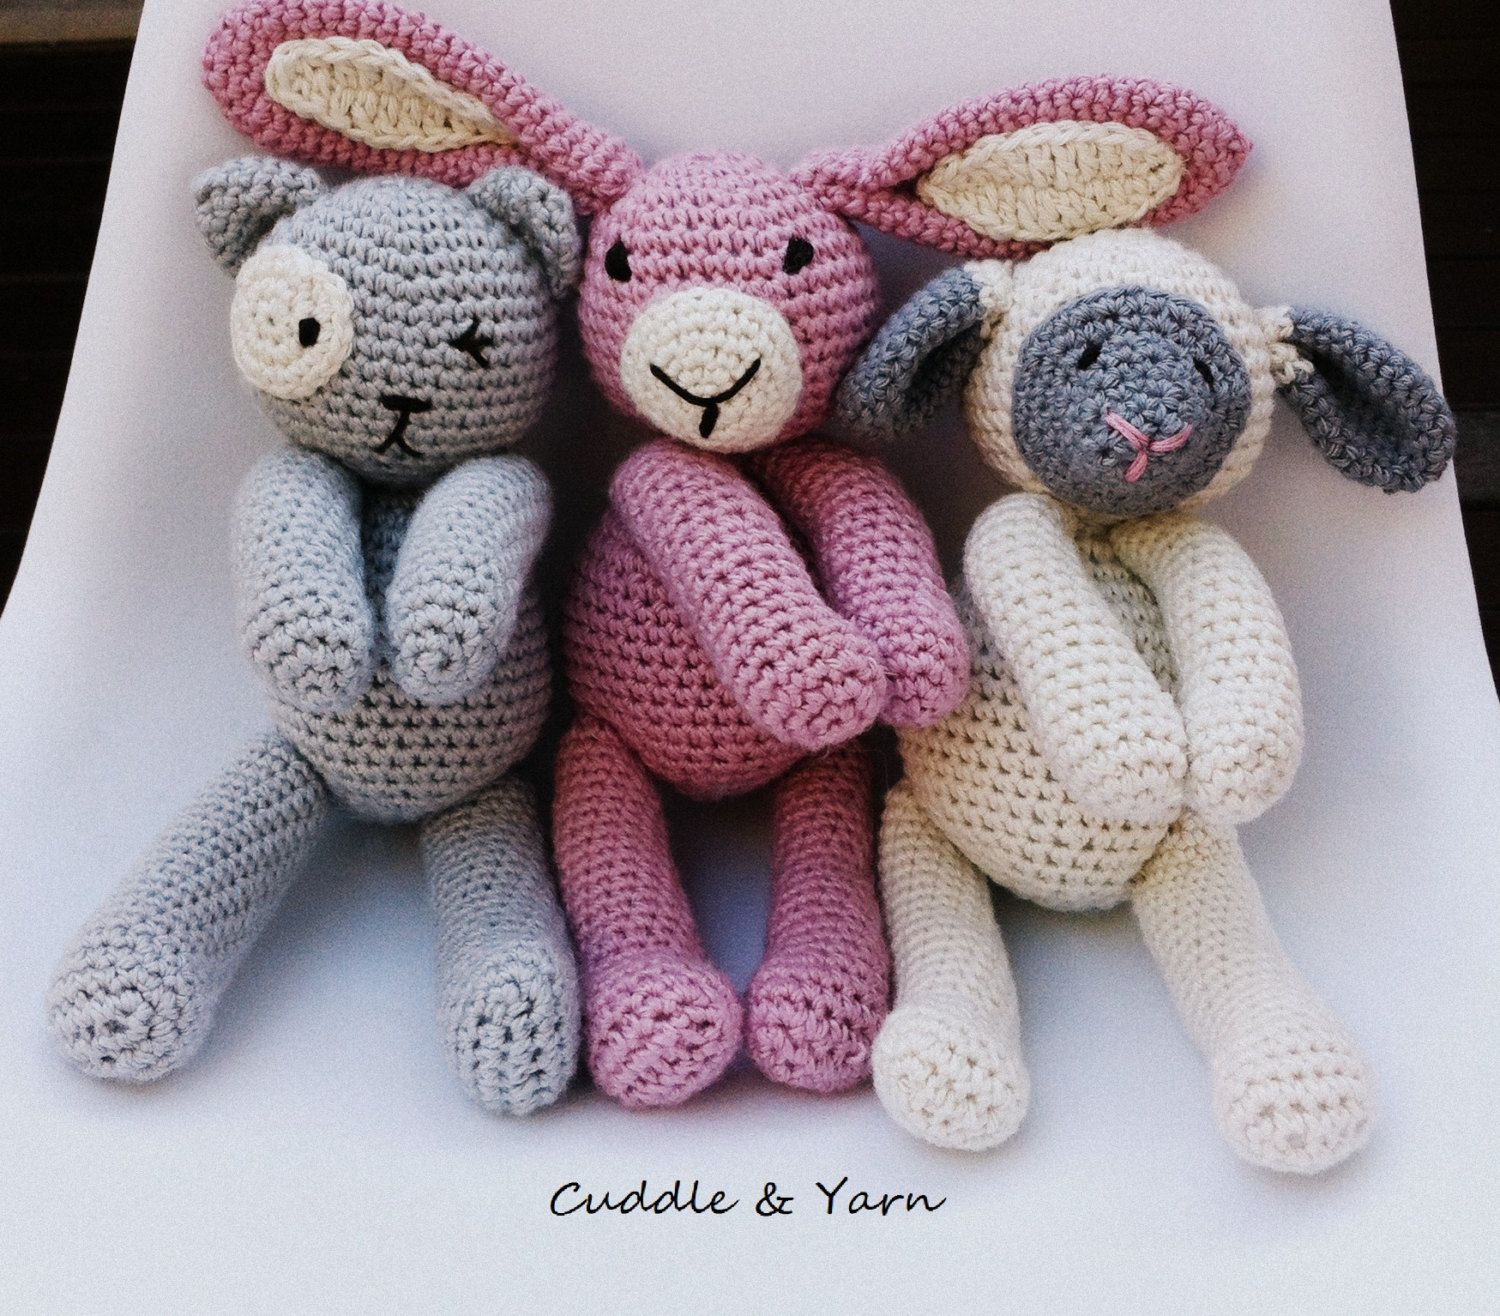 Crochet animals 2 crochet soft toys of your choice in my shop easter crochet animals 2 crochet soft toys of your choice in my shop easter gift easter photoshoot negle Images